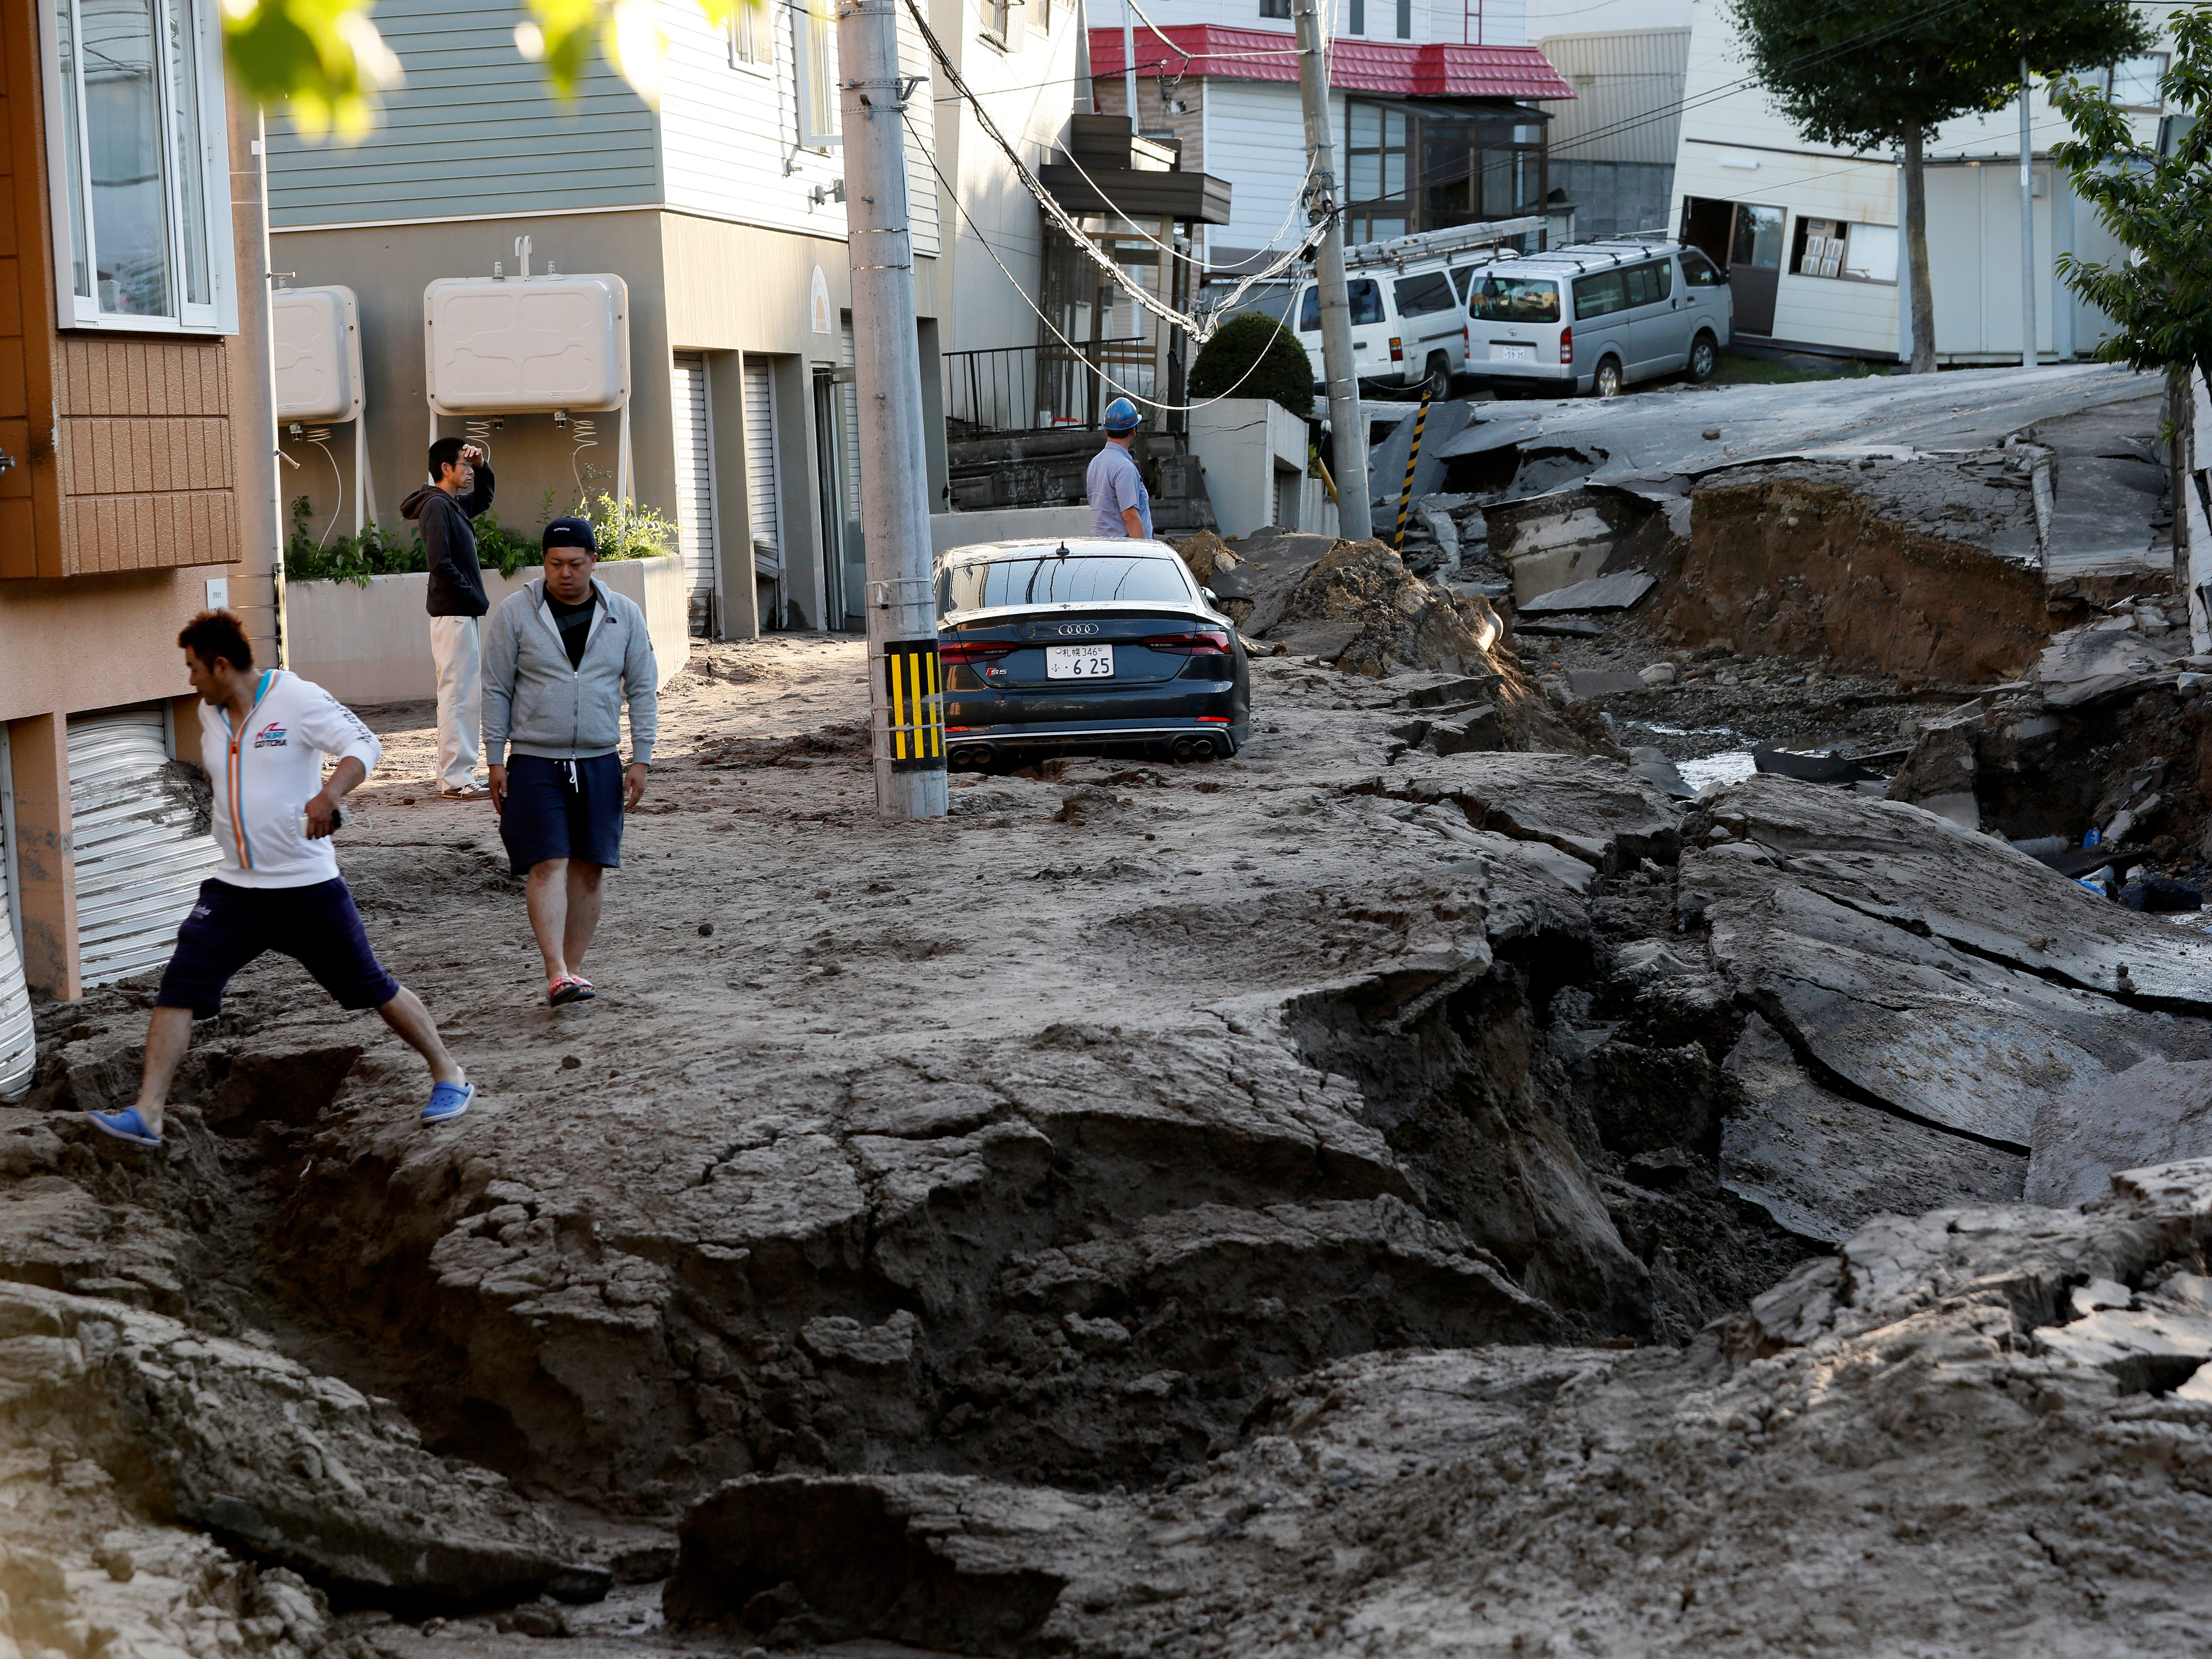 A resident leaps over a crack of a severely damaged road following a powerful earthquake in Sapporo, Hokkaido, northern Japan, Sept. 6, 2018. The Japan Meteorological Agency said a magnitude 6.7 earthquake jolted Japan's northern island of Hokkaido in the early hours of Sept. 6, killing at least seven people, injuring hundreds and causing large landslides and blackouts, affecting almost three million households.